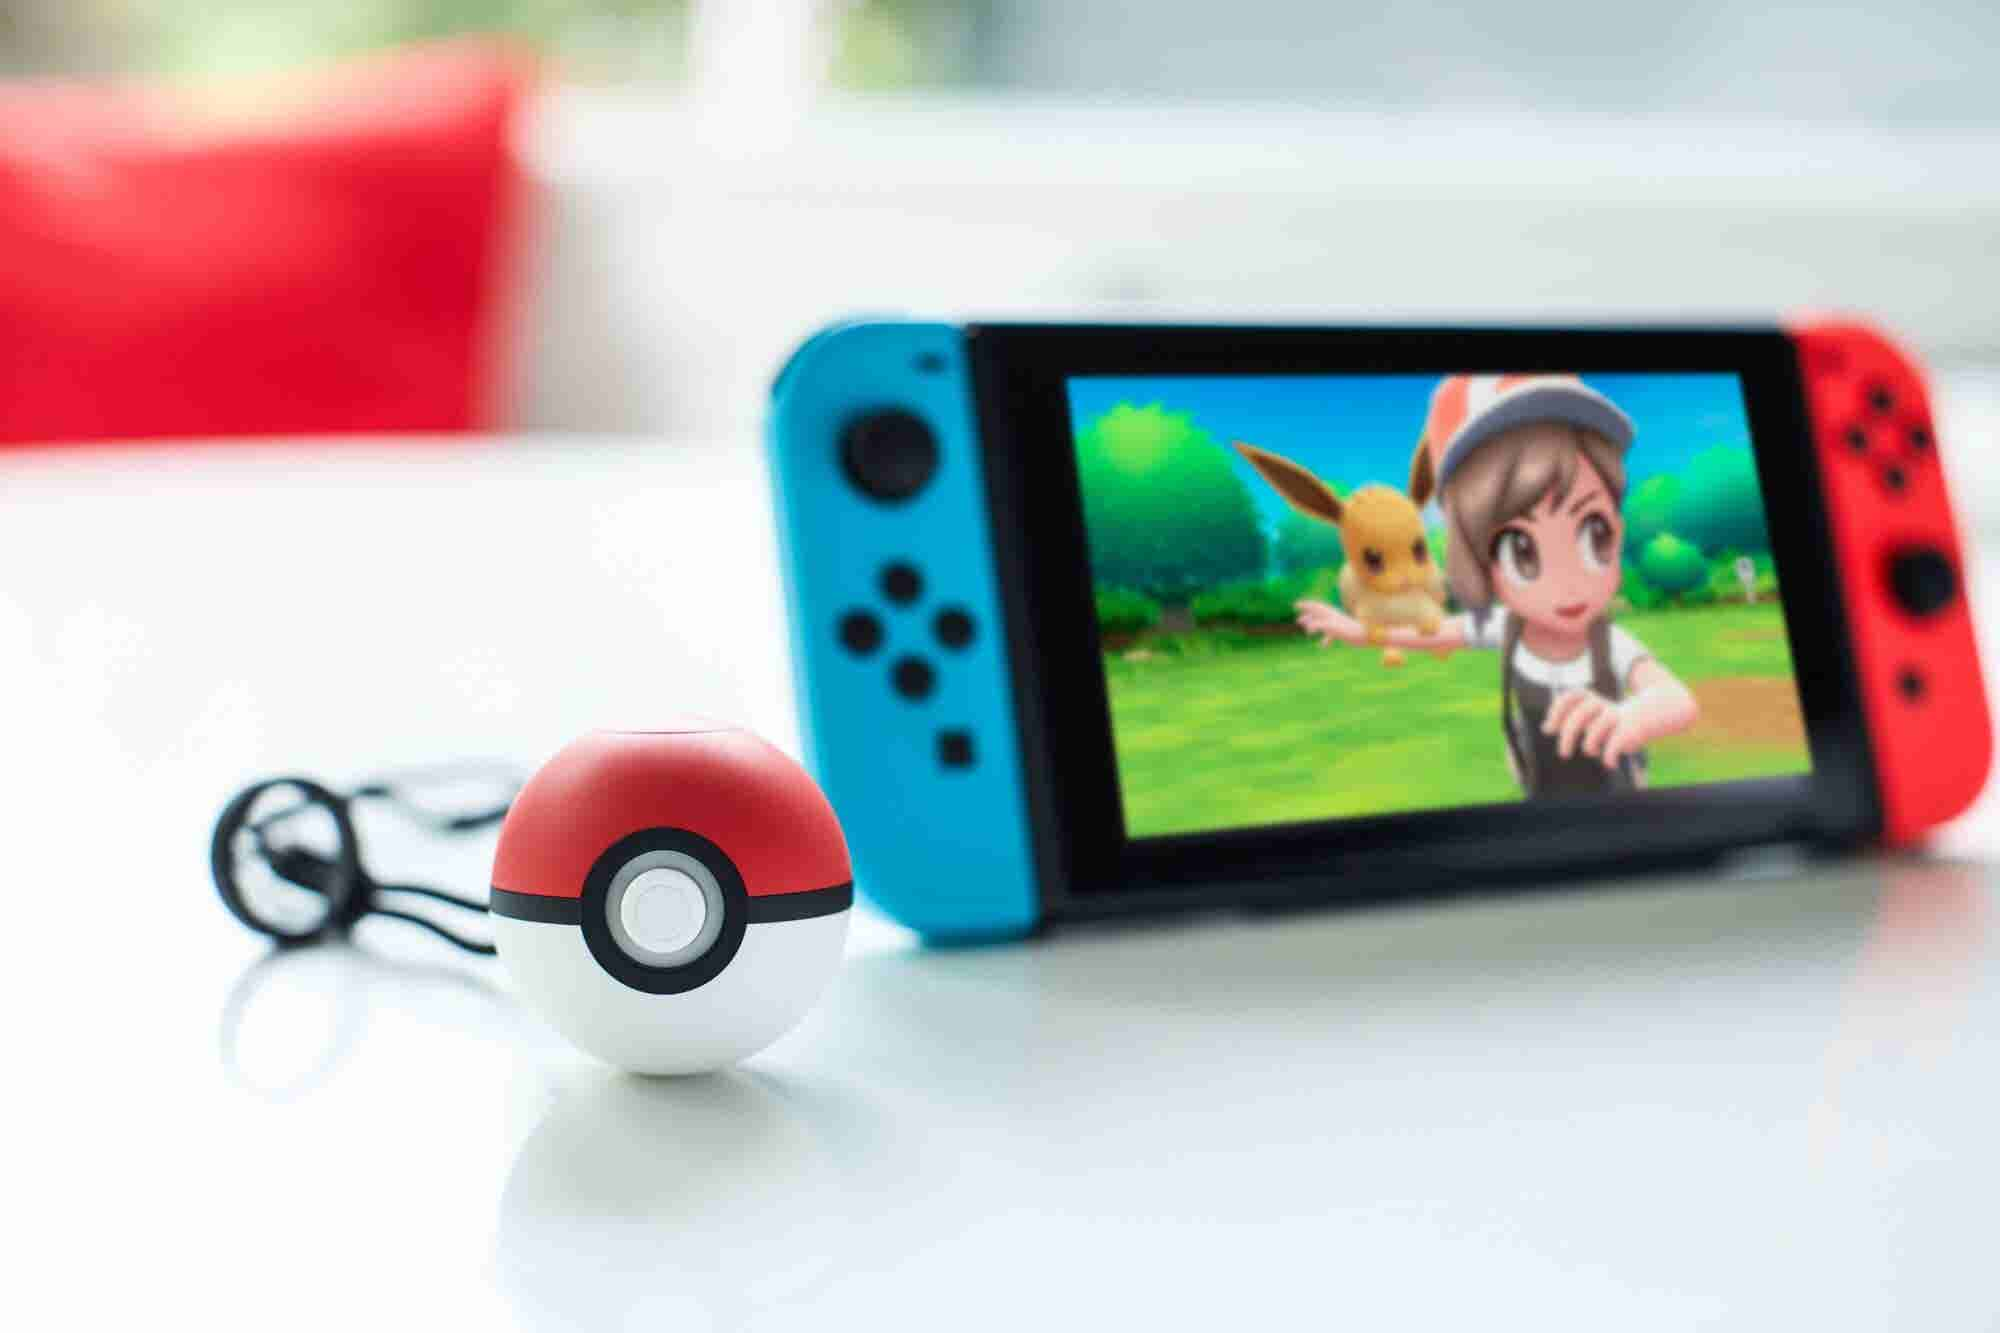 Upcoming Pokémon Game on Nintendo Switch Hopes to Capture Huge Mobile Fan Base of 'Pokémon Go'